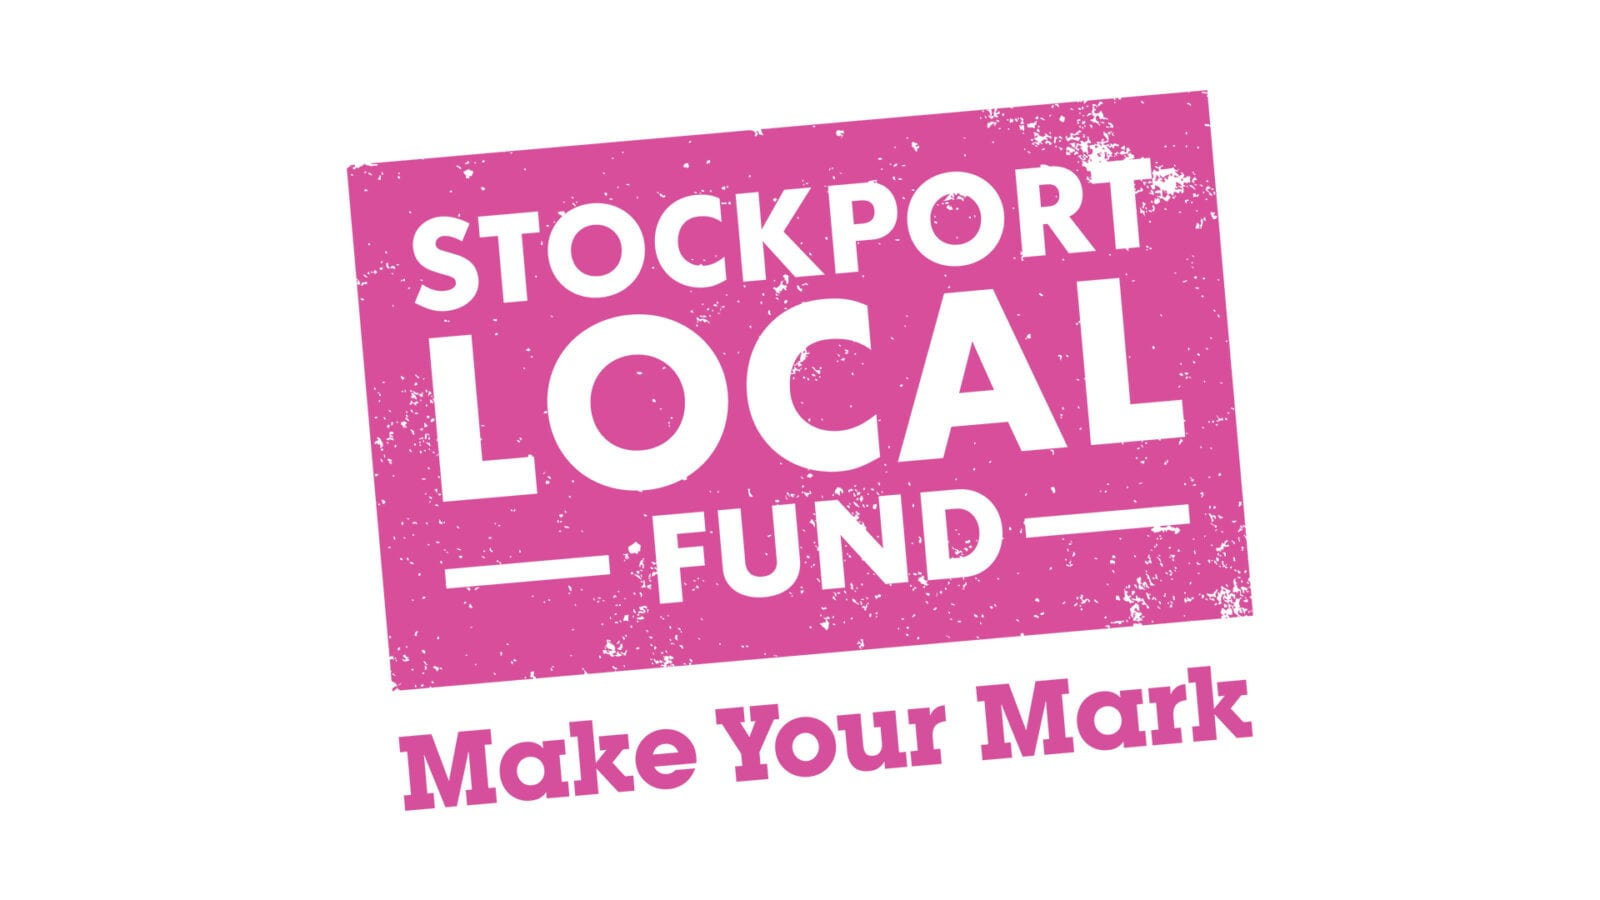 Grants of up to £1,000 made available for Stockport organisations, The Manc